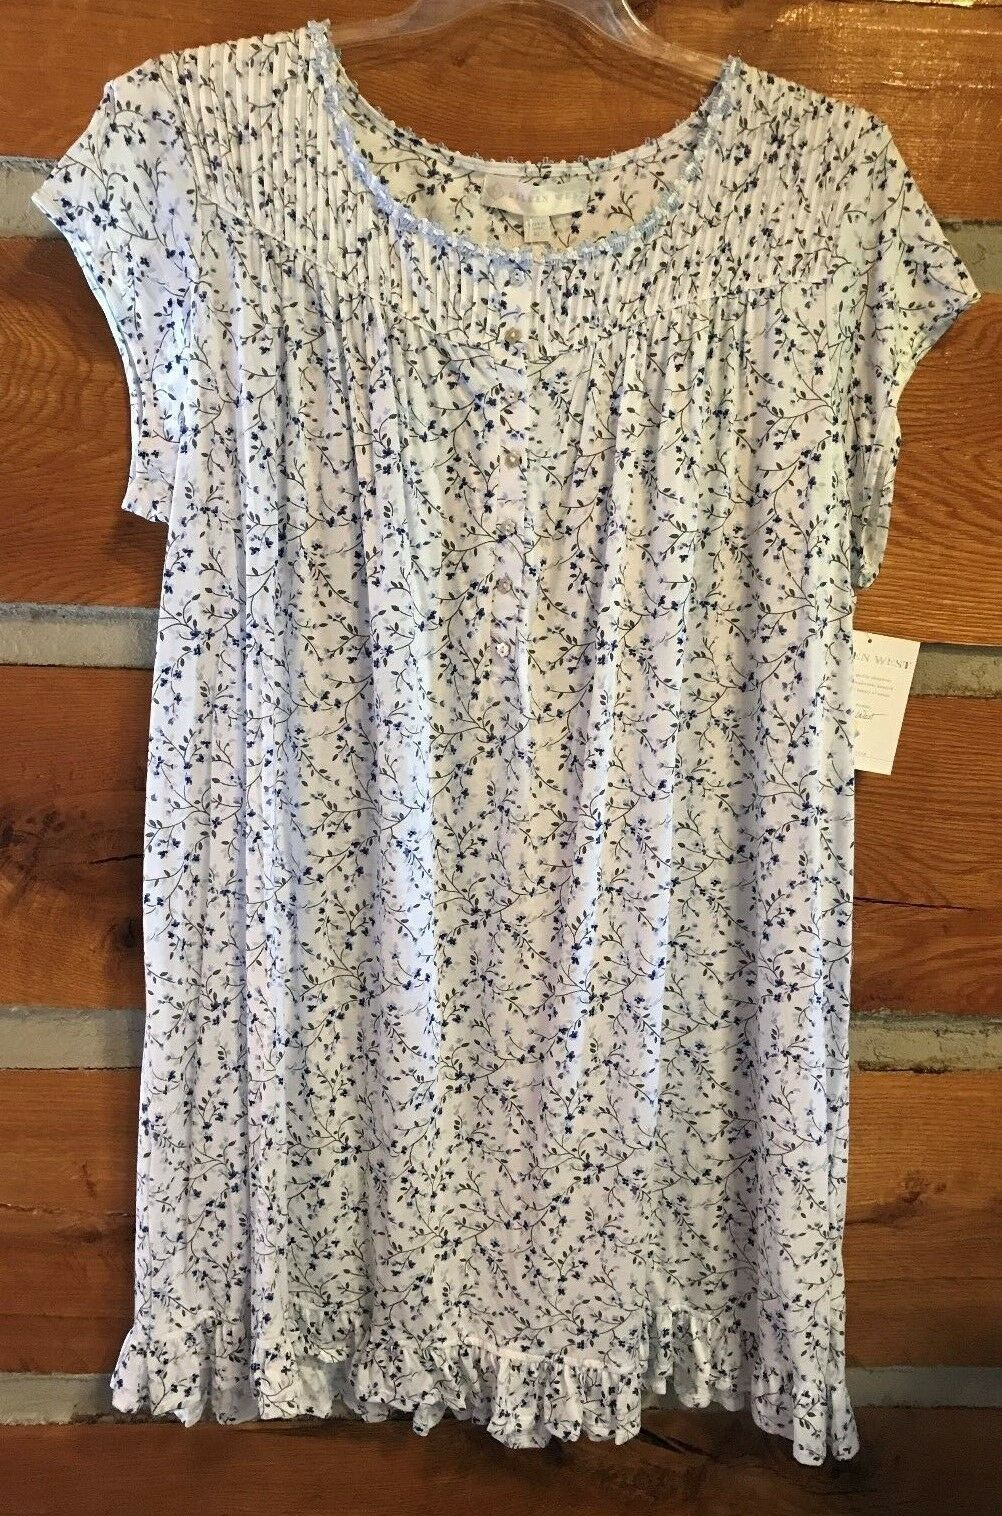 New w tag EILEEN WEST knee length gown - XLg - modal knit floral